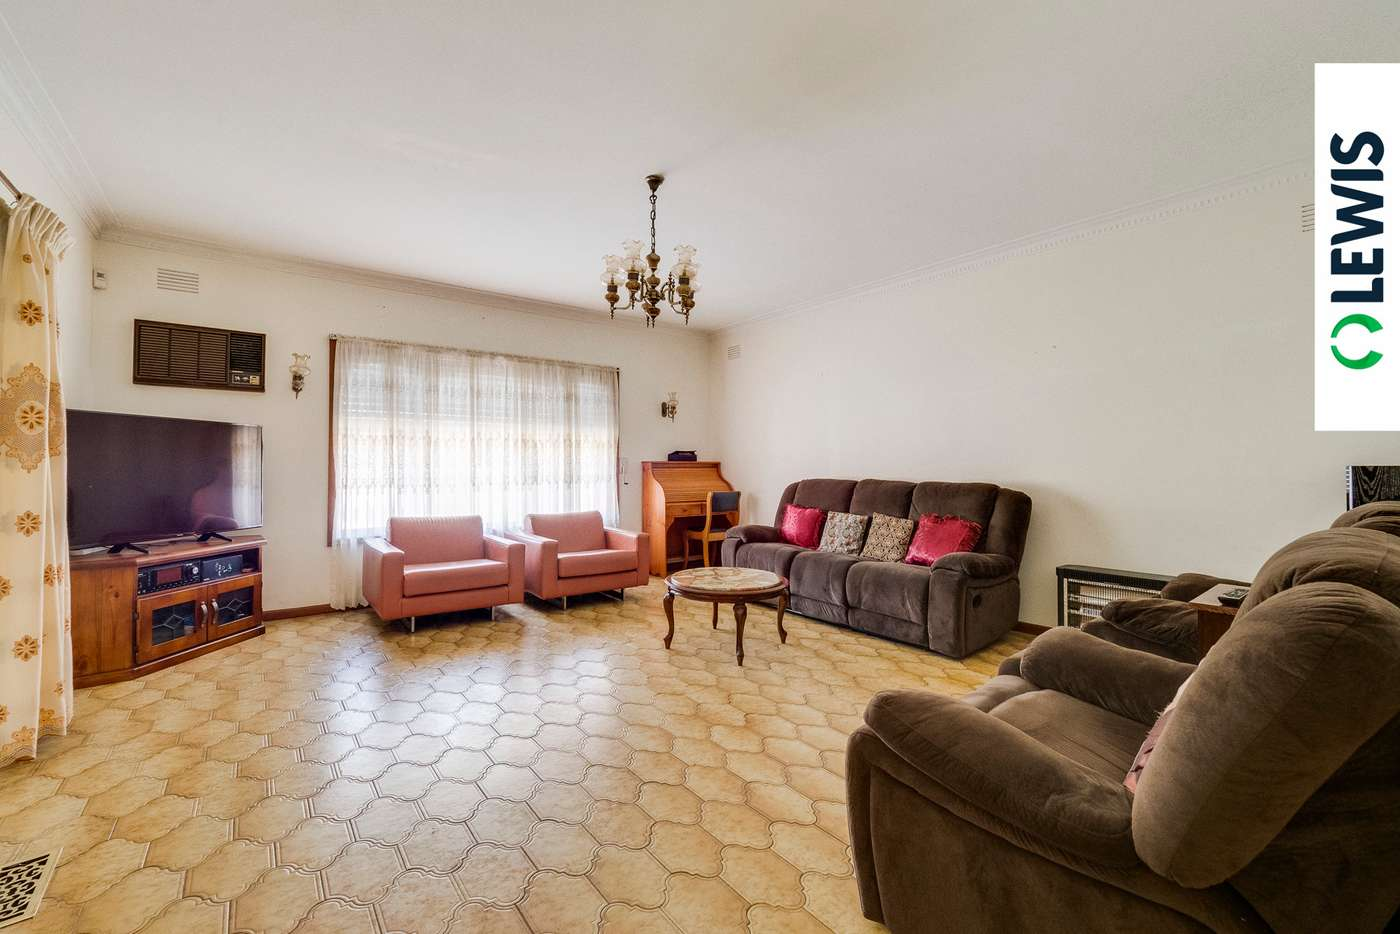 Seventh view of Homely house listing, 56 Harding Street, Coburg VIC 3058